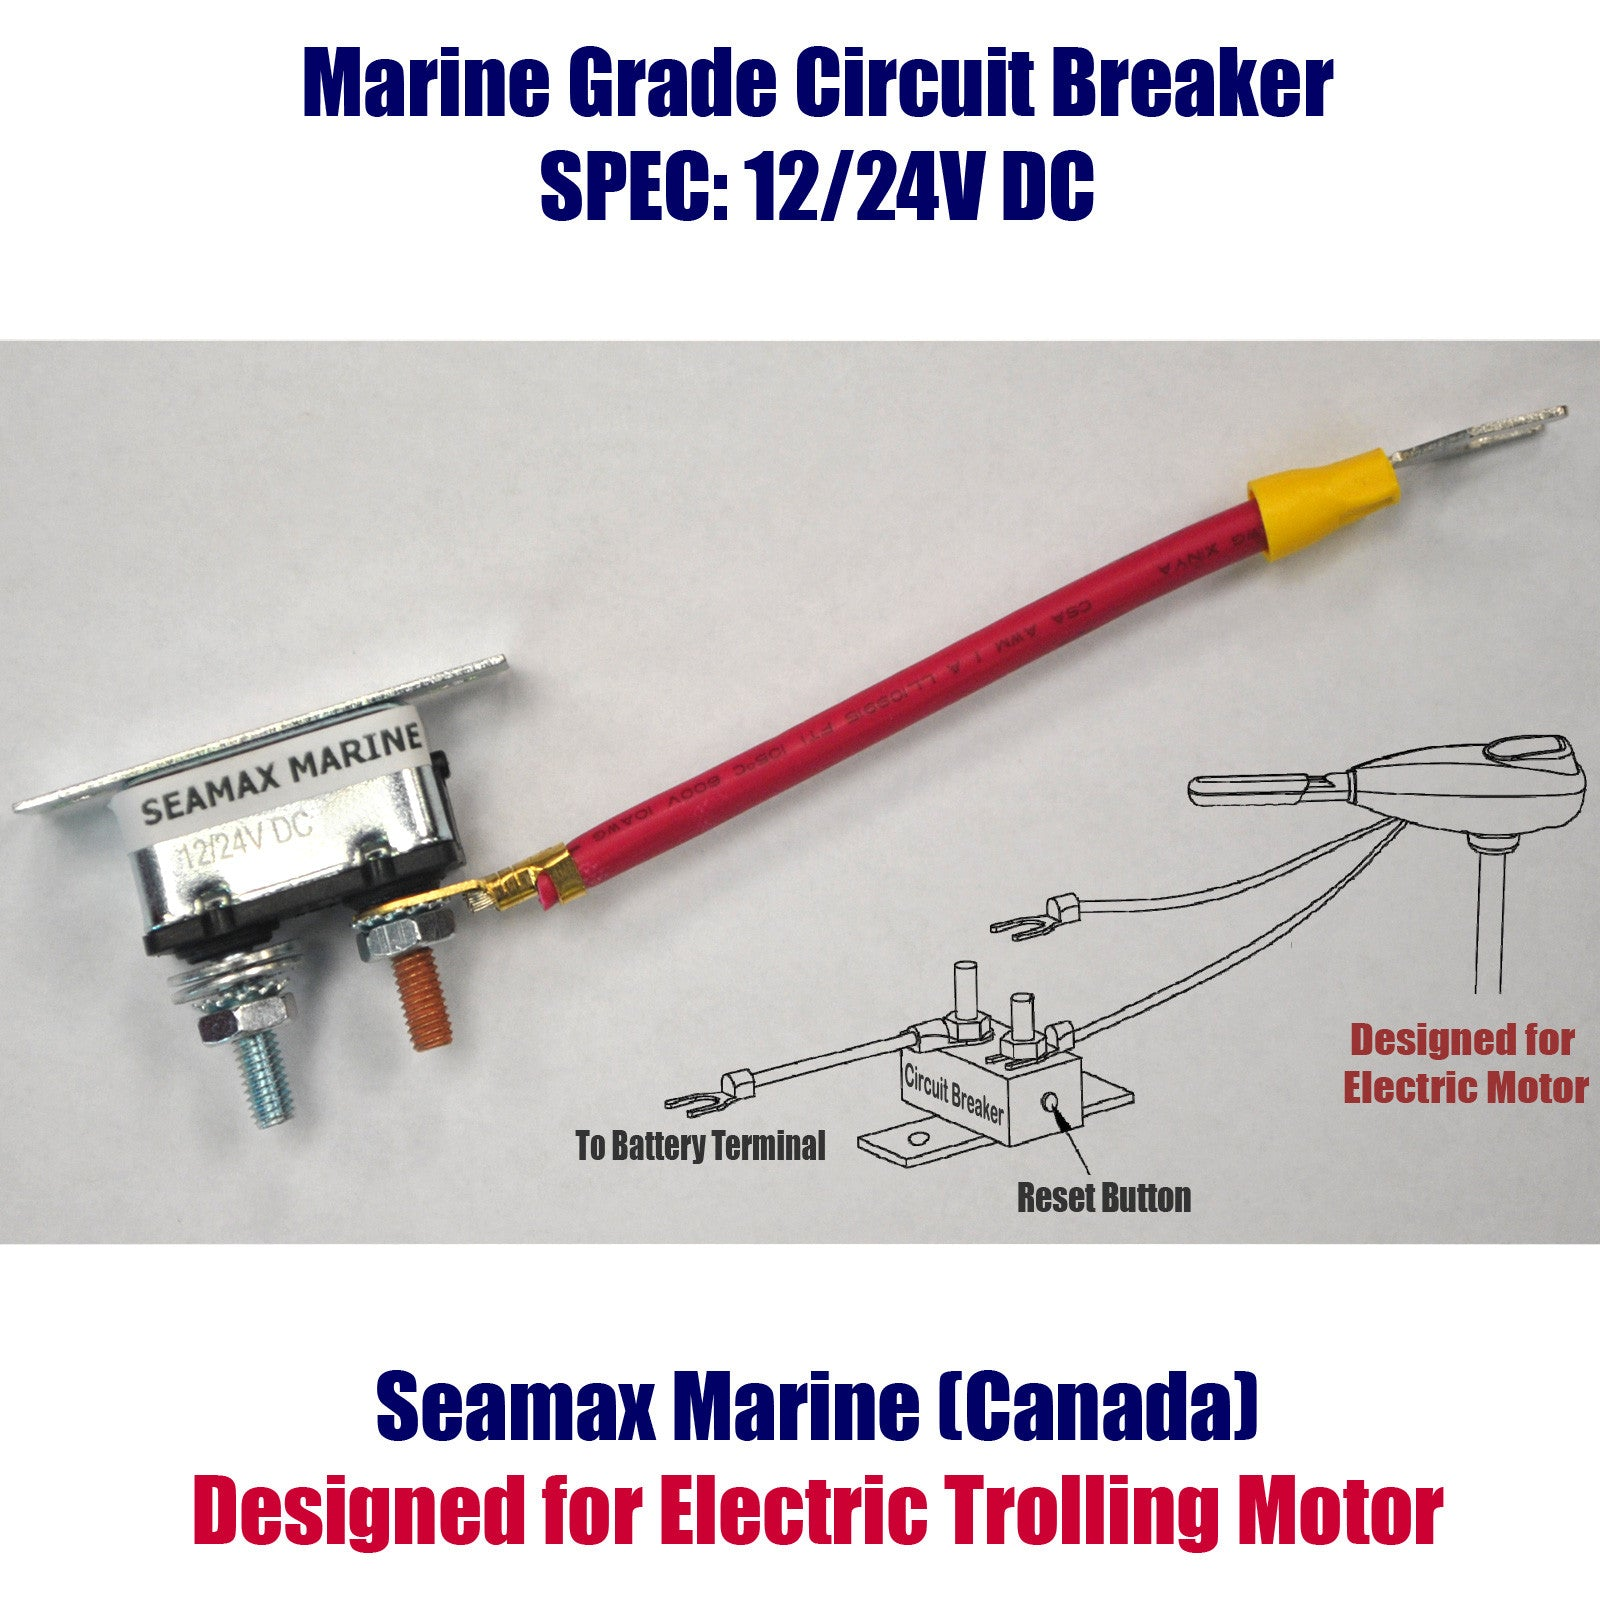 Seamax 12v Electric Trolling Motor Tiller Handle Marine How To Guide For The Power Circuit Of A Forward Reverse 62 Pound Thrust 40 Inch Shaft 8 Speeds